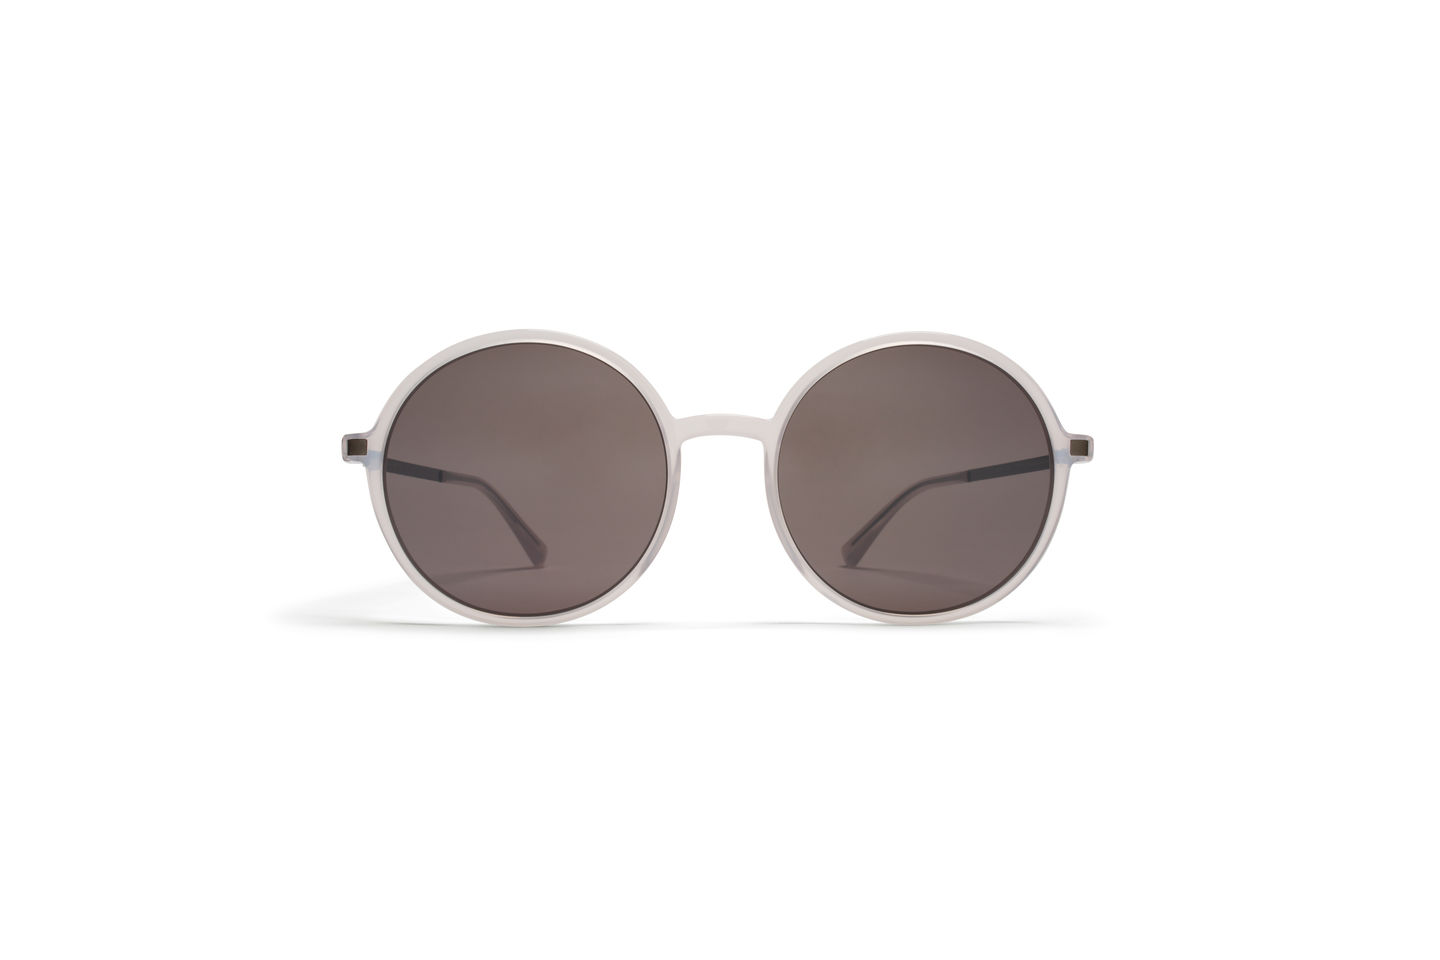 MYKITA Acetatsonnenbrille ANANA in MYKITA JOURNALs Tropical Edit